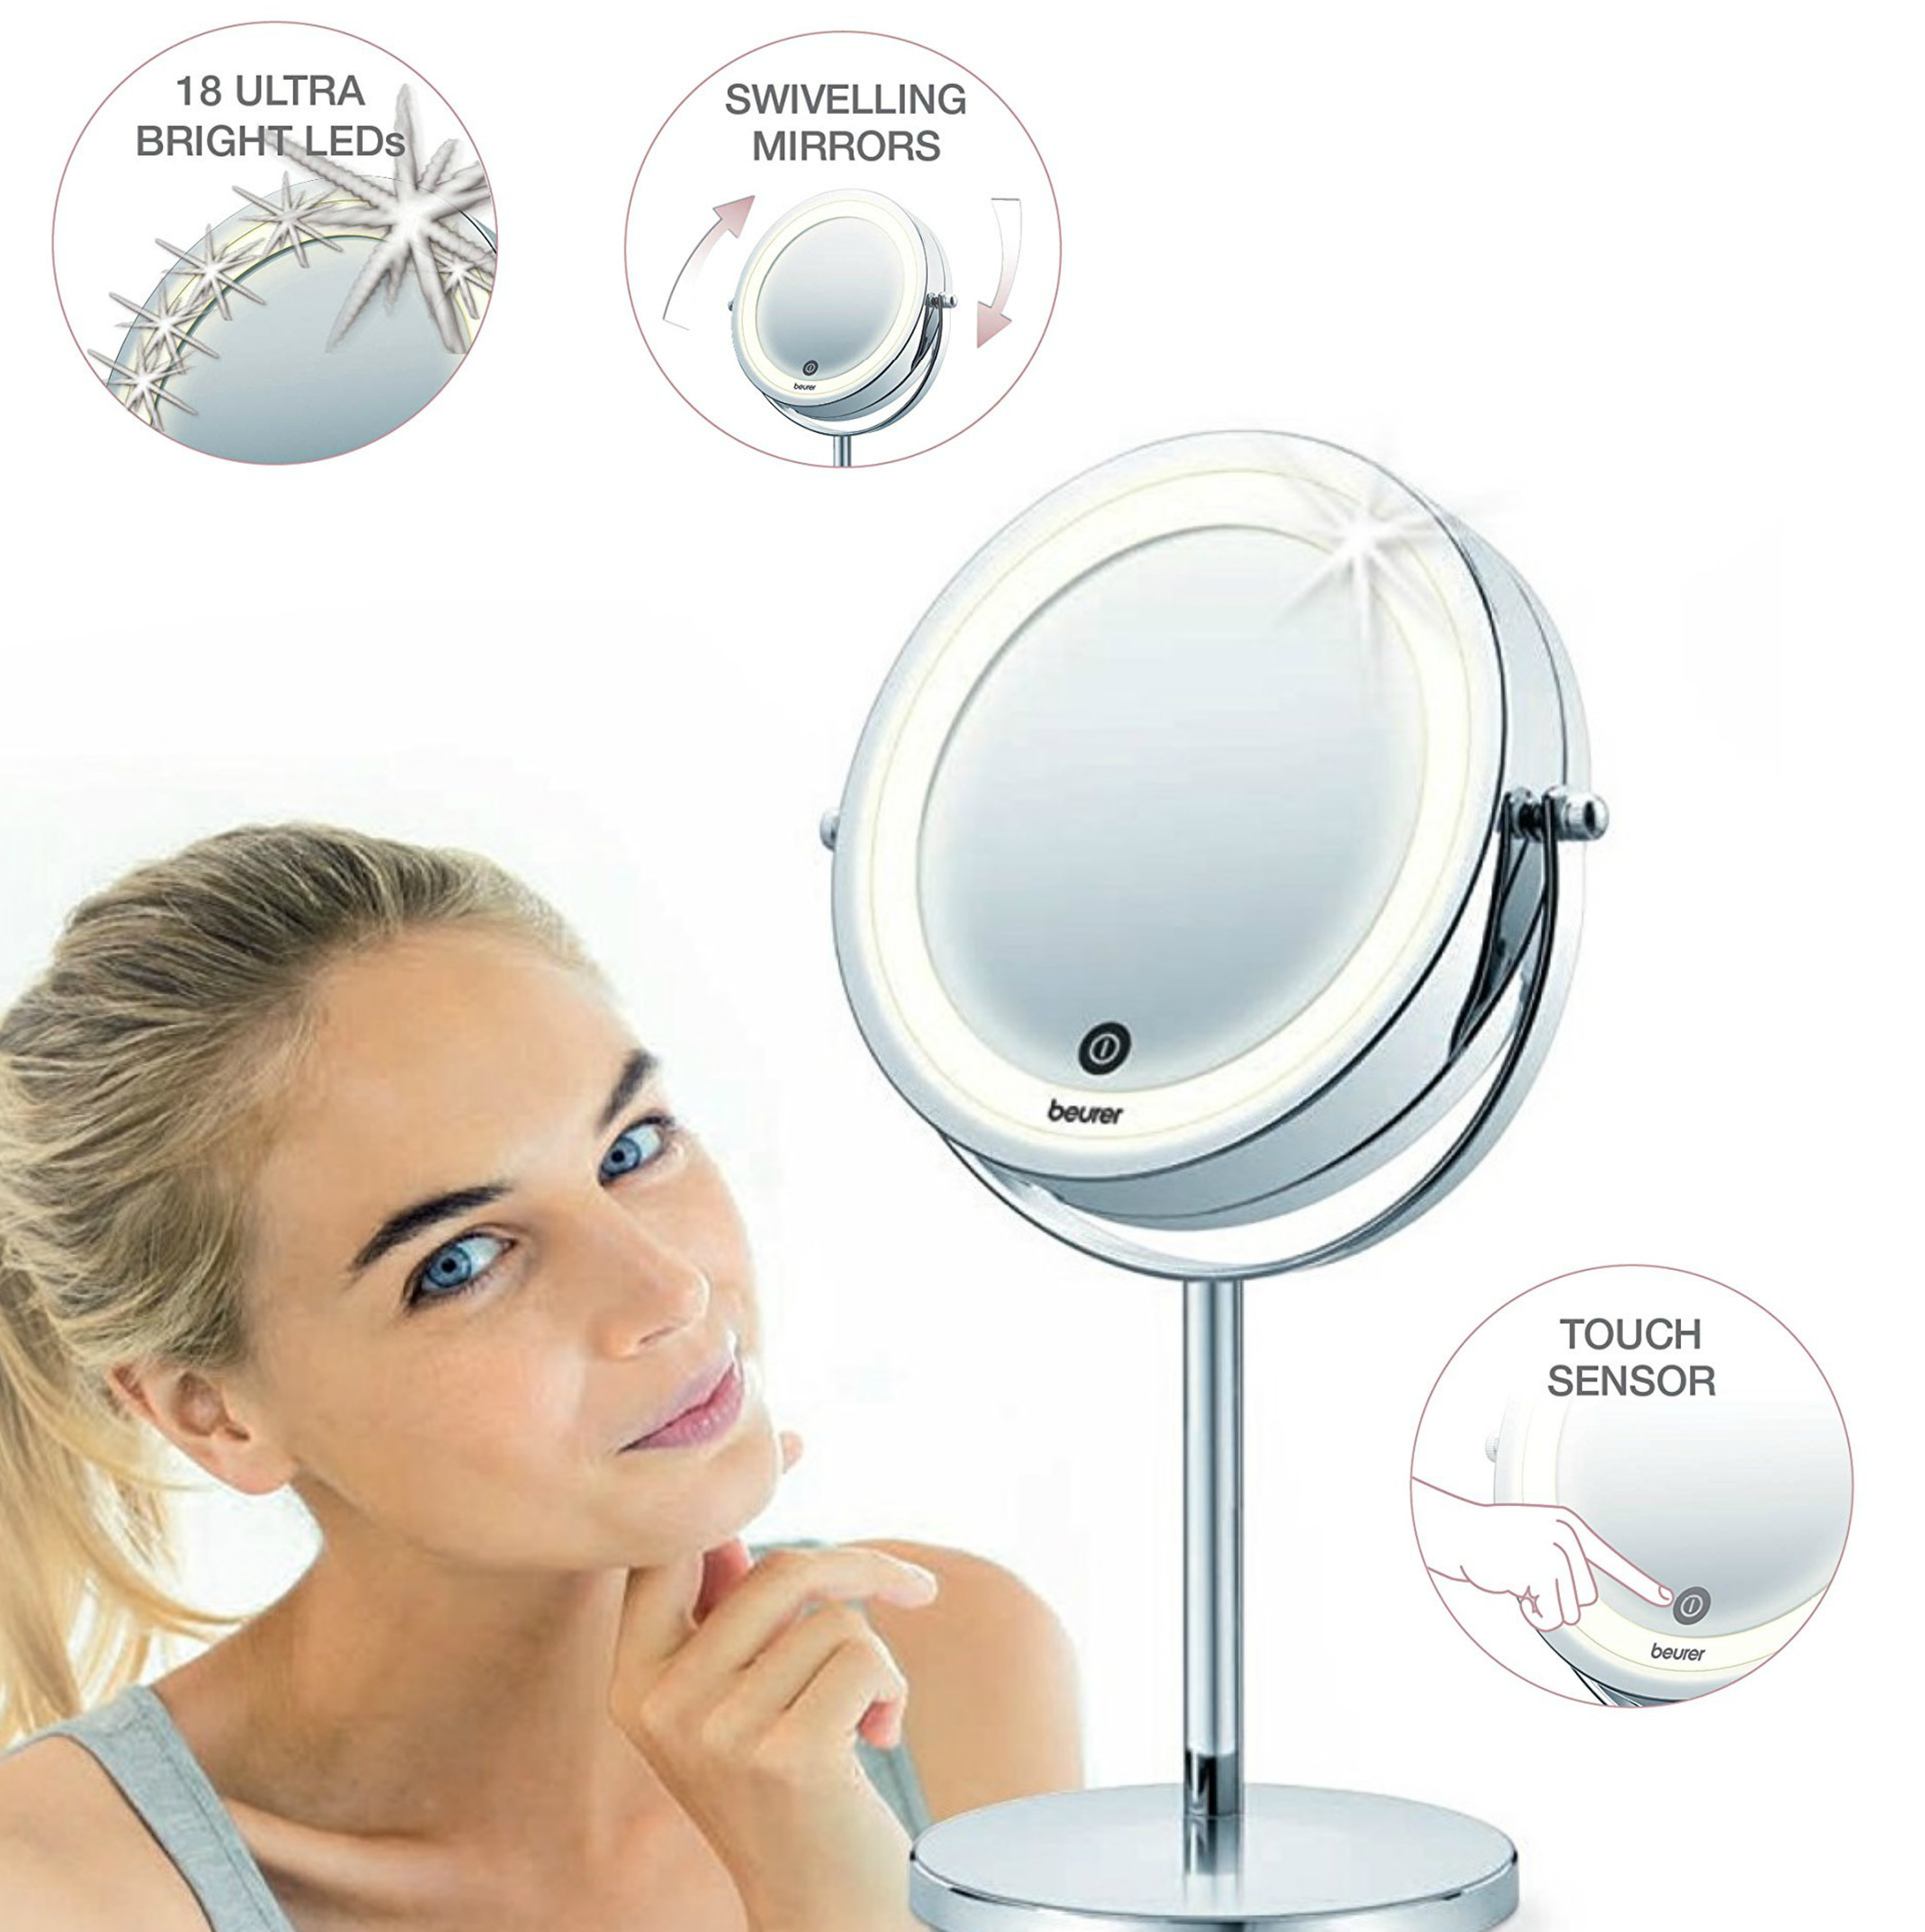 Beurer BS55 Illuminated Swive Vanity Mirror|MakeUp|Shaving|13cm|LED|Touch Sensor